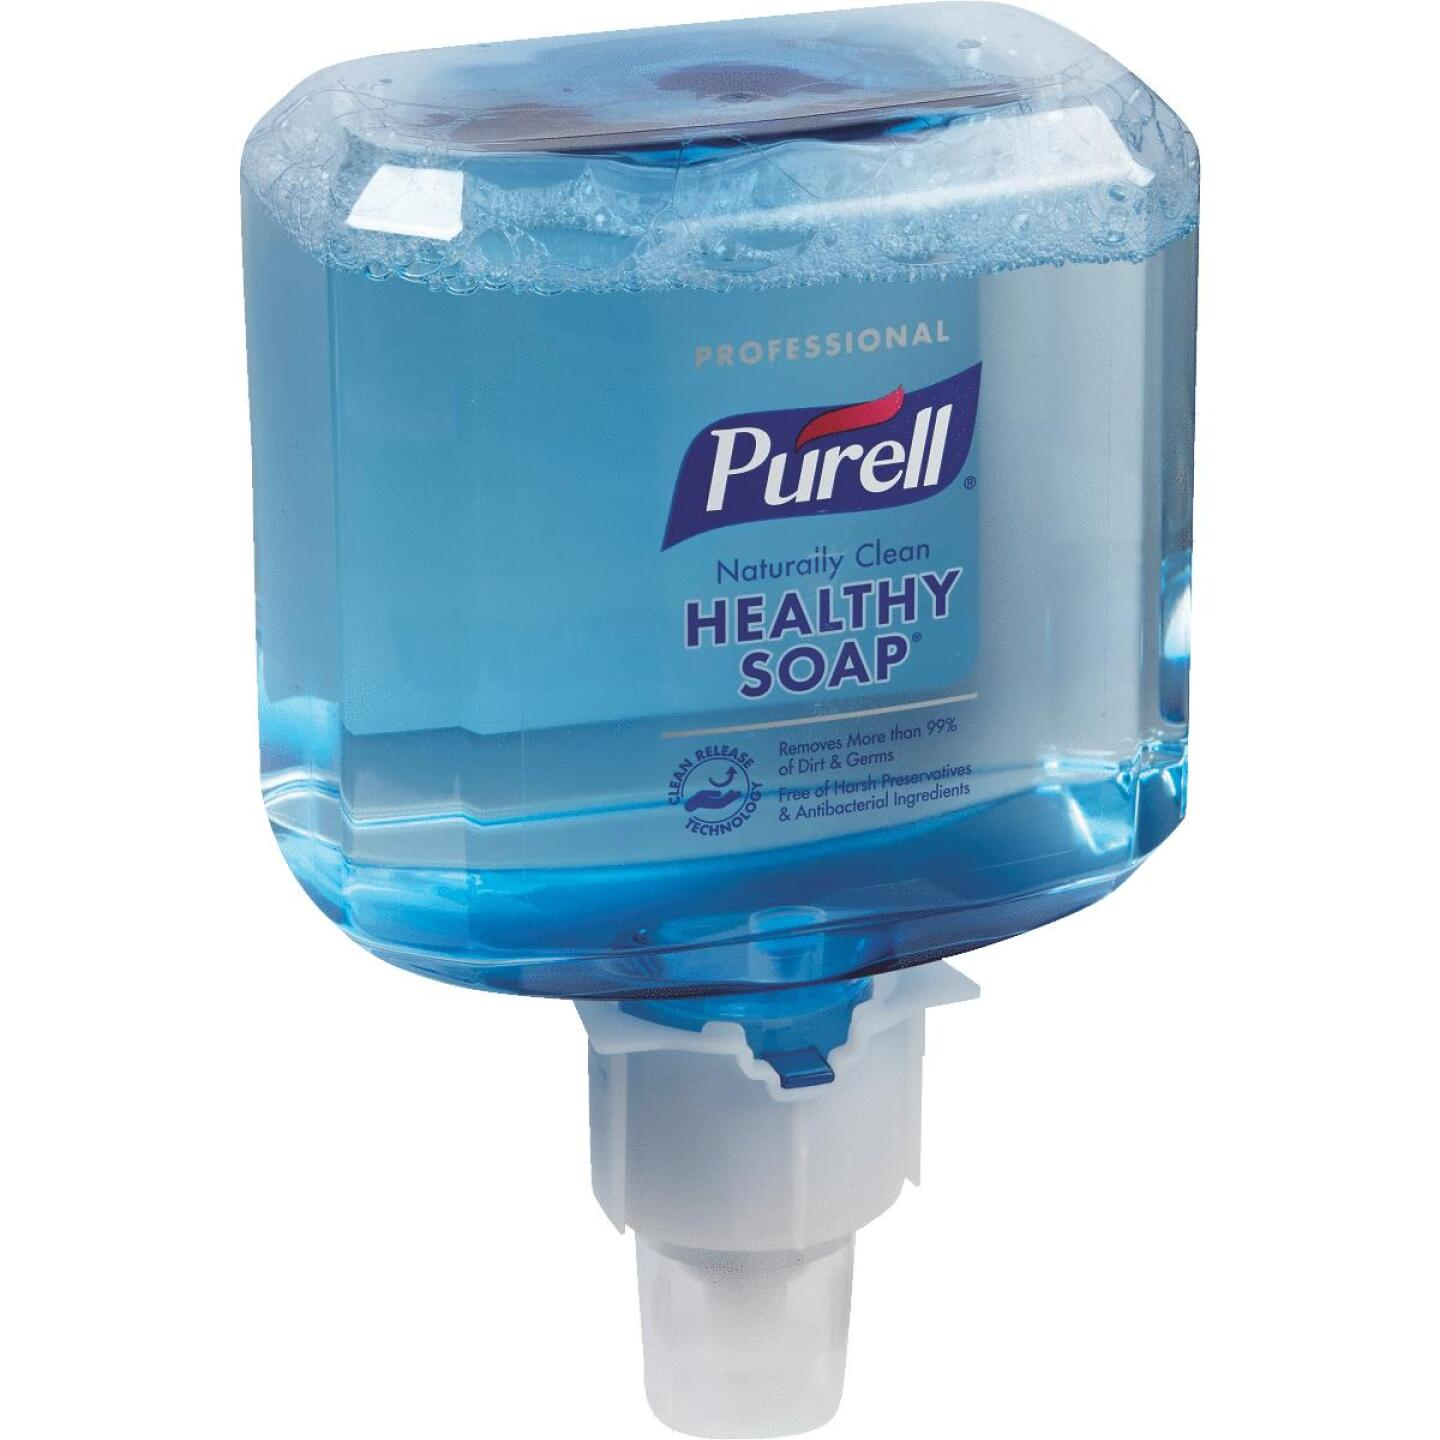 Purell ES6 Professional CRT Healthy Soap Foam 1200 mL Clean Scent Hand Cleaner for Touch-Free Dispenser Image 1